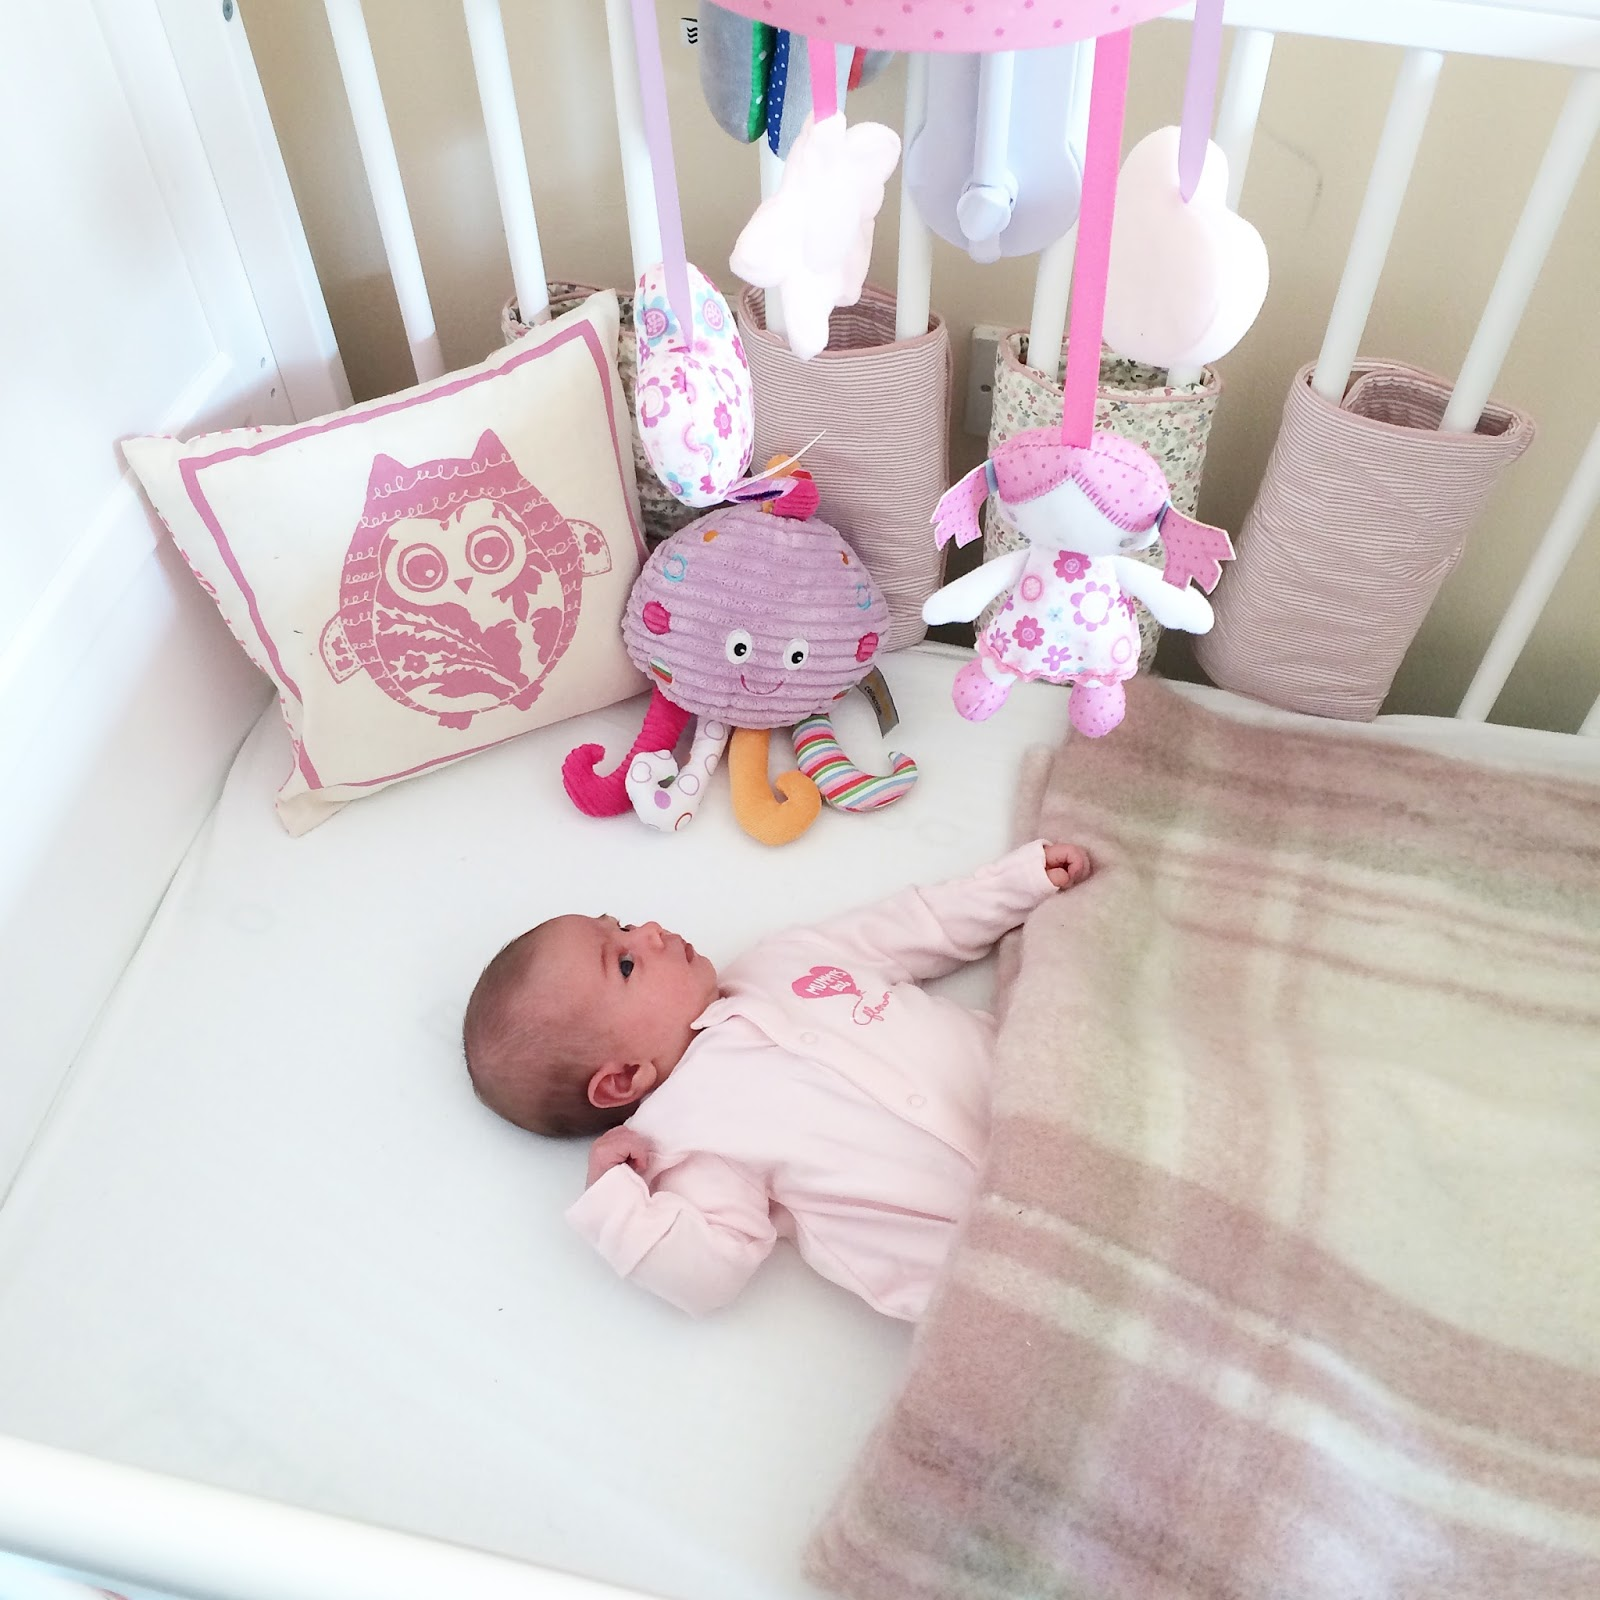 Beautiful ... Little Newborn Moses Basket, To Looking Absolutely Tiny In Their New  Cot! The Good News Is That There Are Easy Ways To Facilitate The Transition  With ...